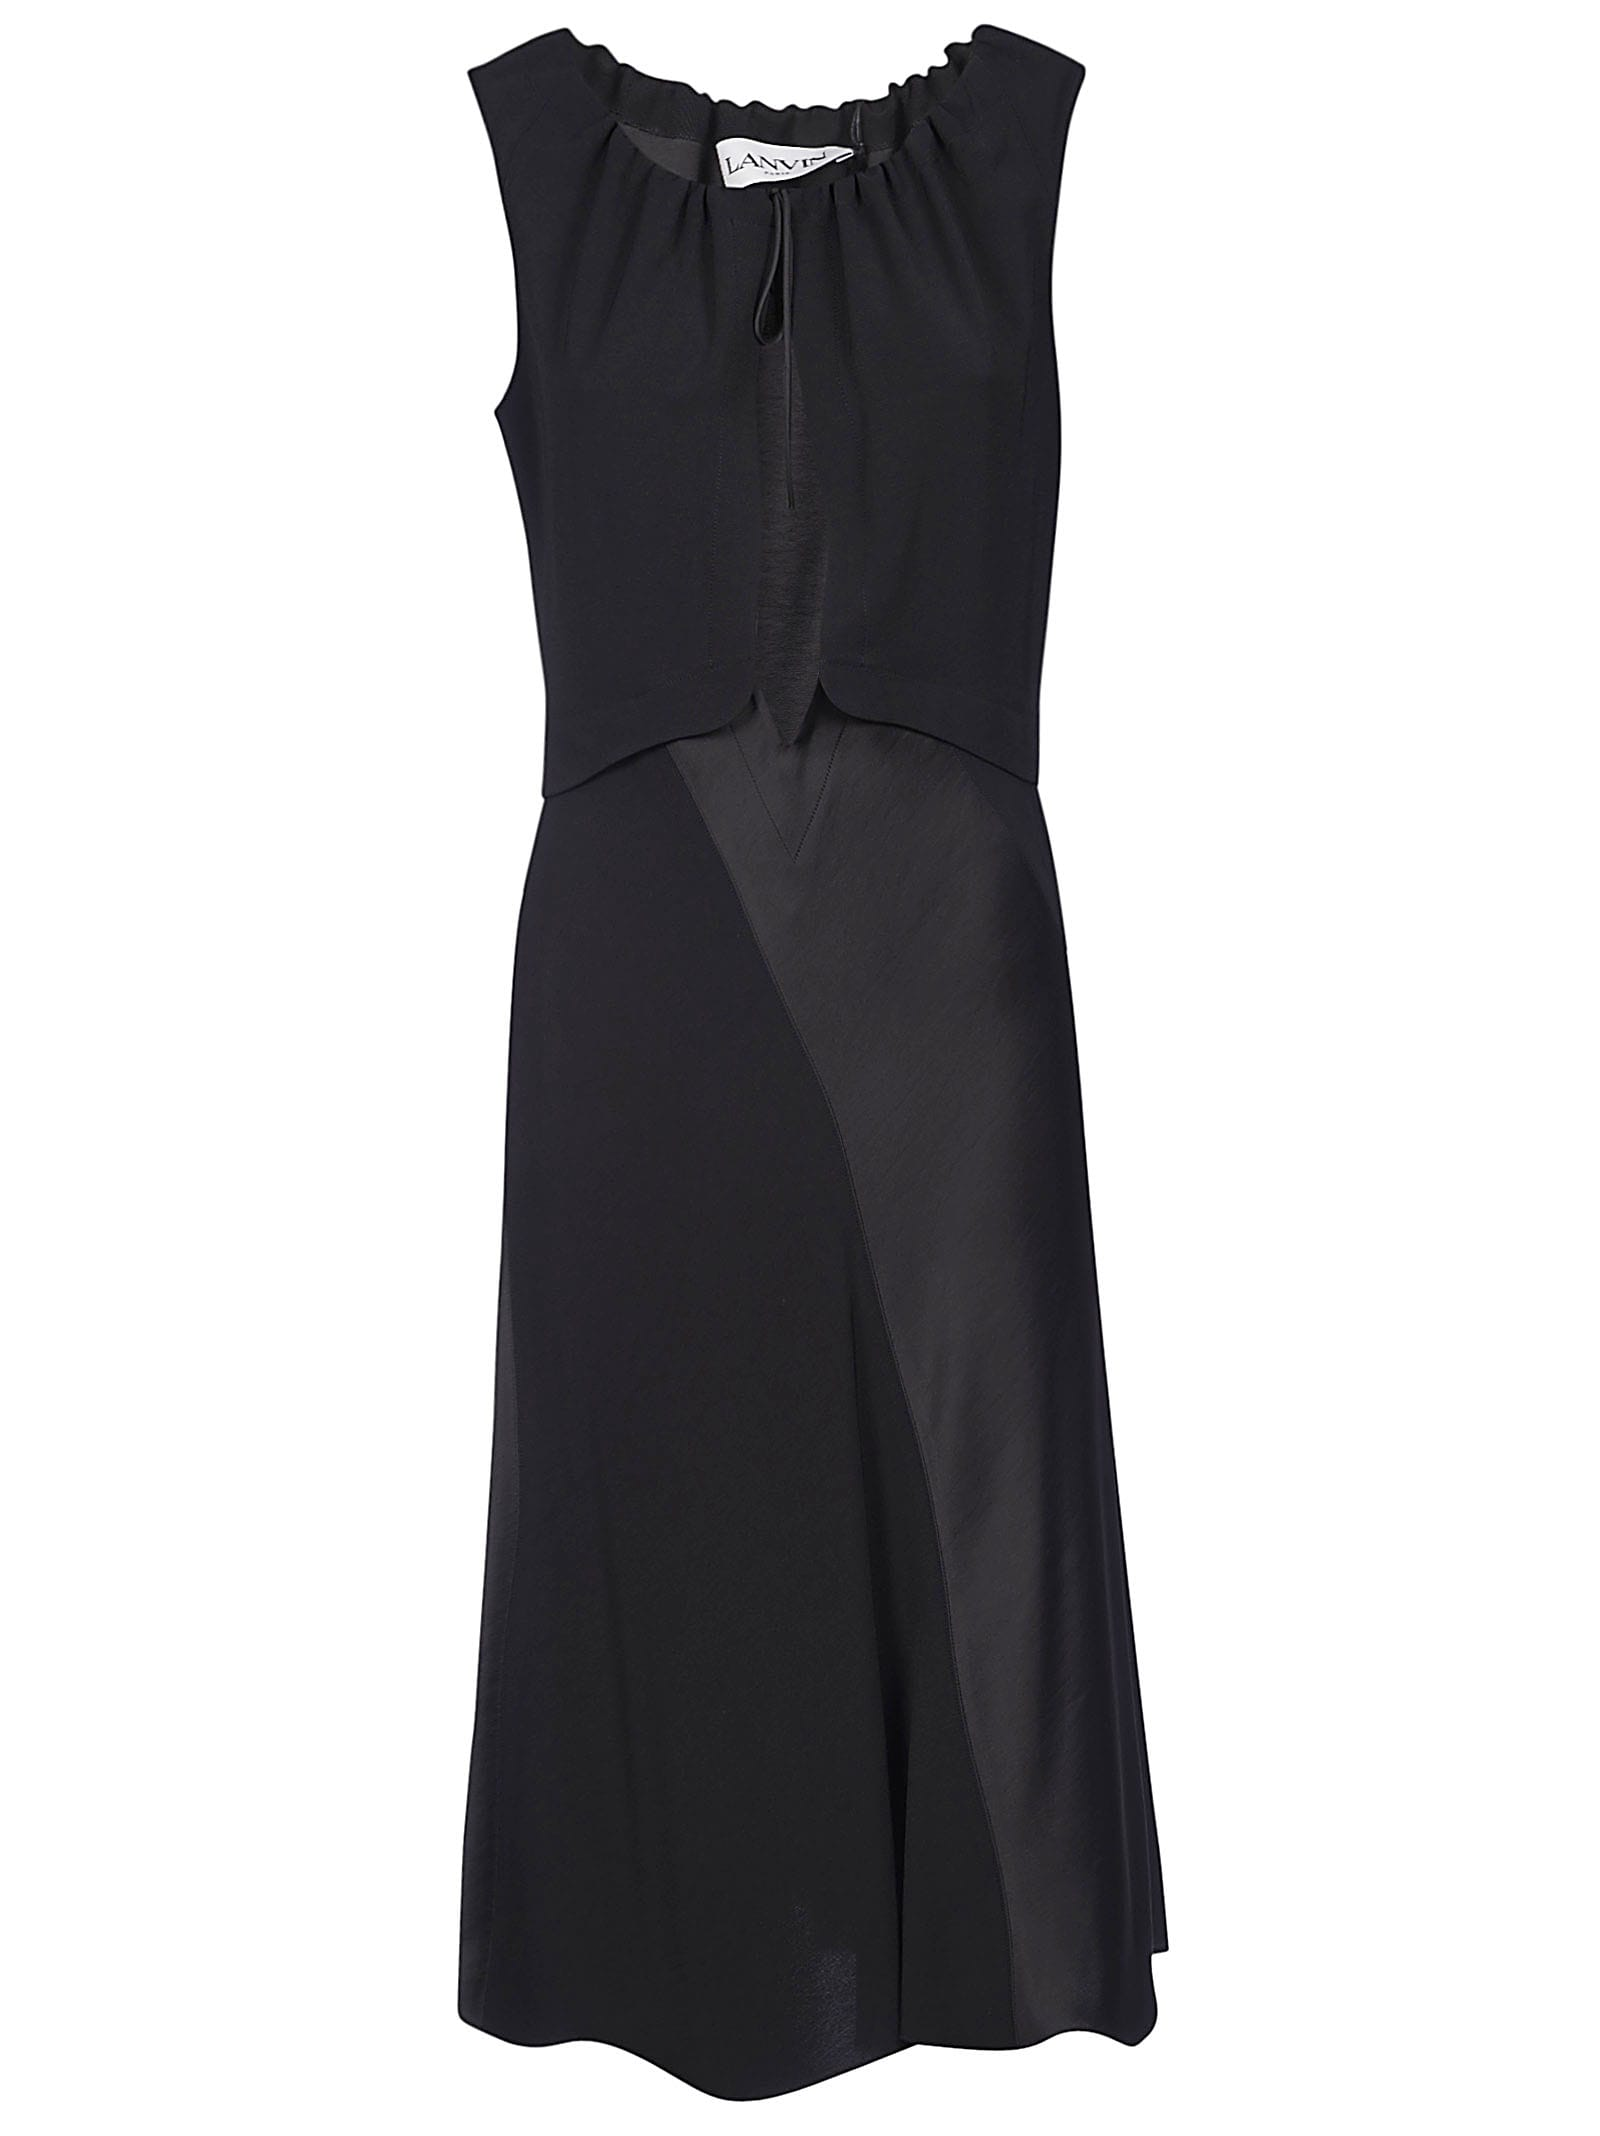 Buy Lanvin Cut-out Detailing Dress online, shop Lanvin with free shipping